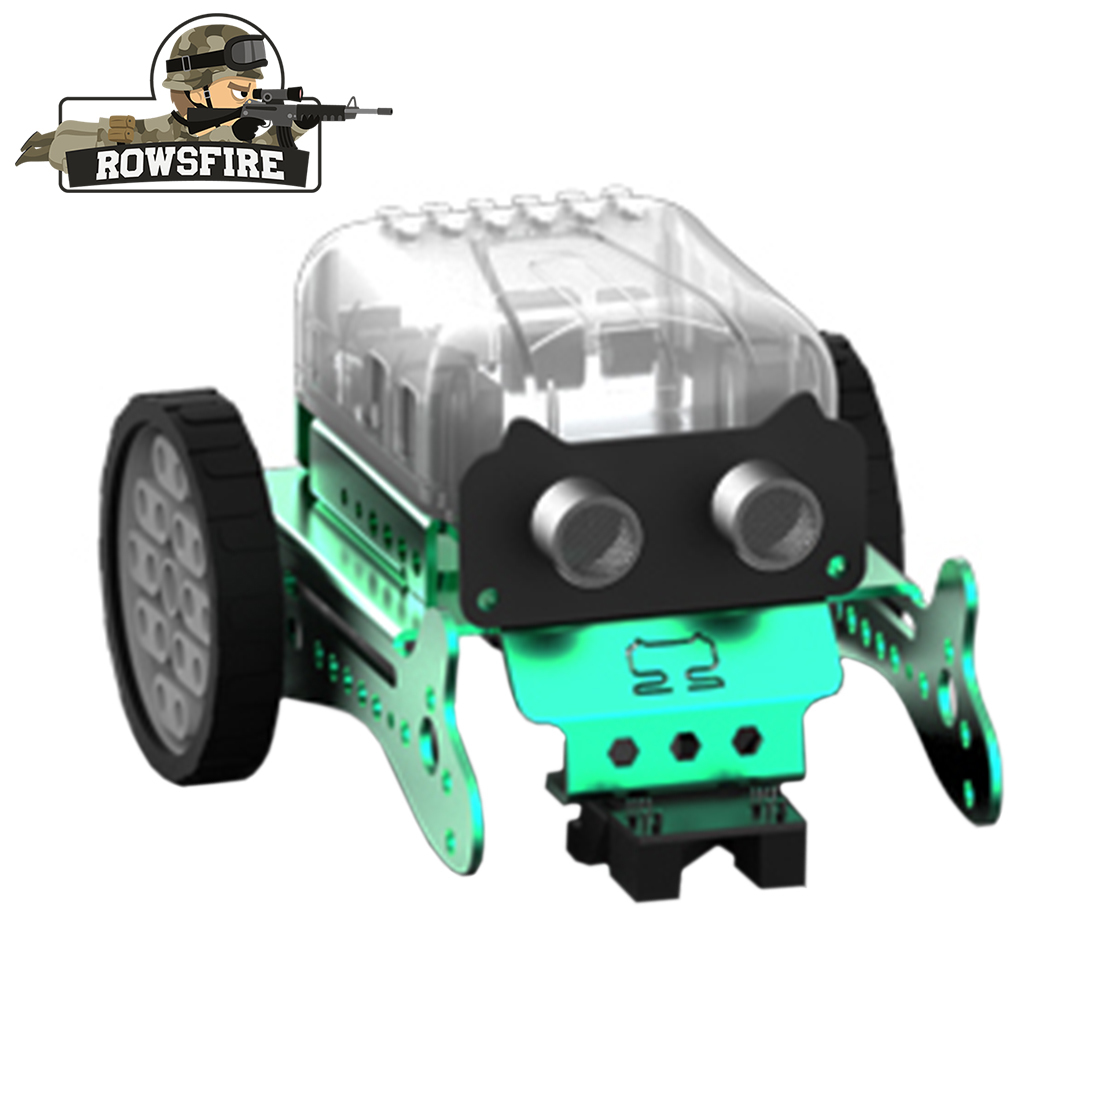 2019 New DIY Neo Programming Scratch Intelligent Obstacle Avoidance Car Robot Kit Toys Games- Red/Green